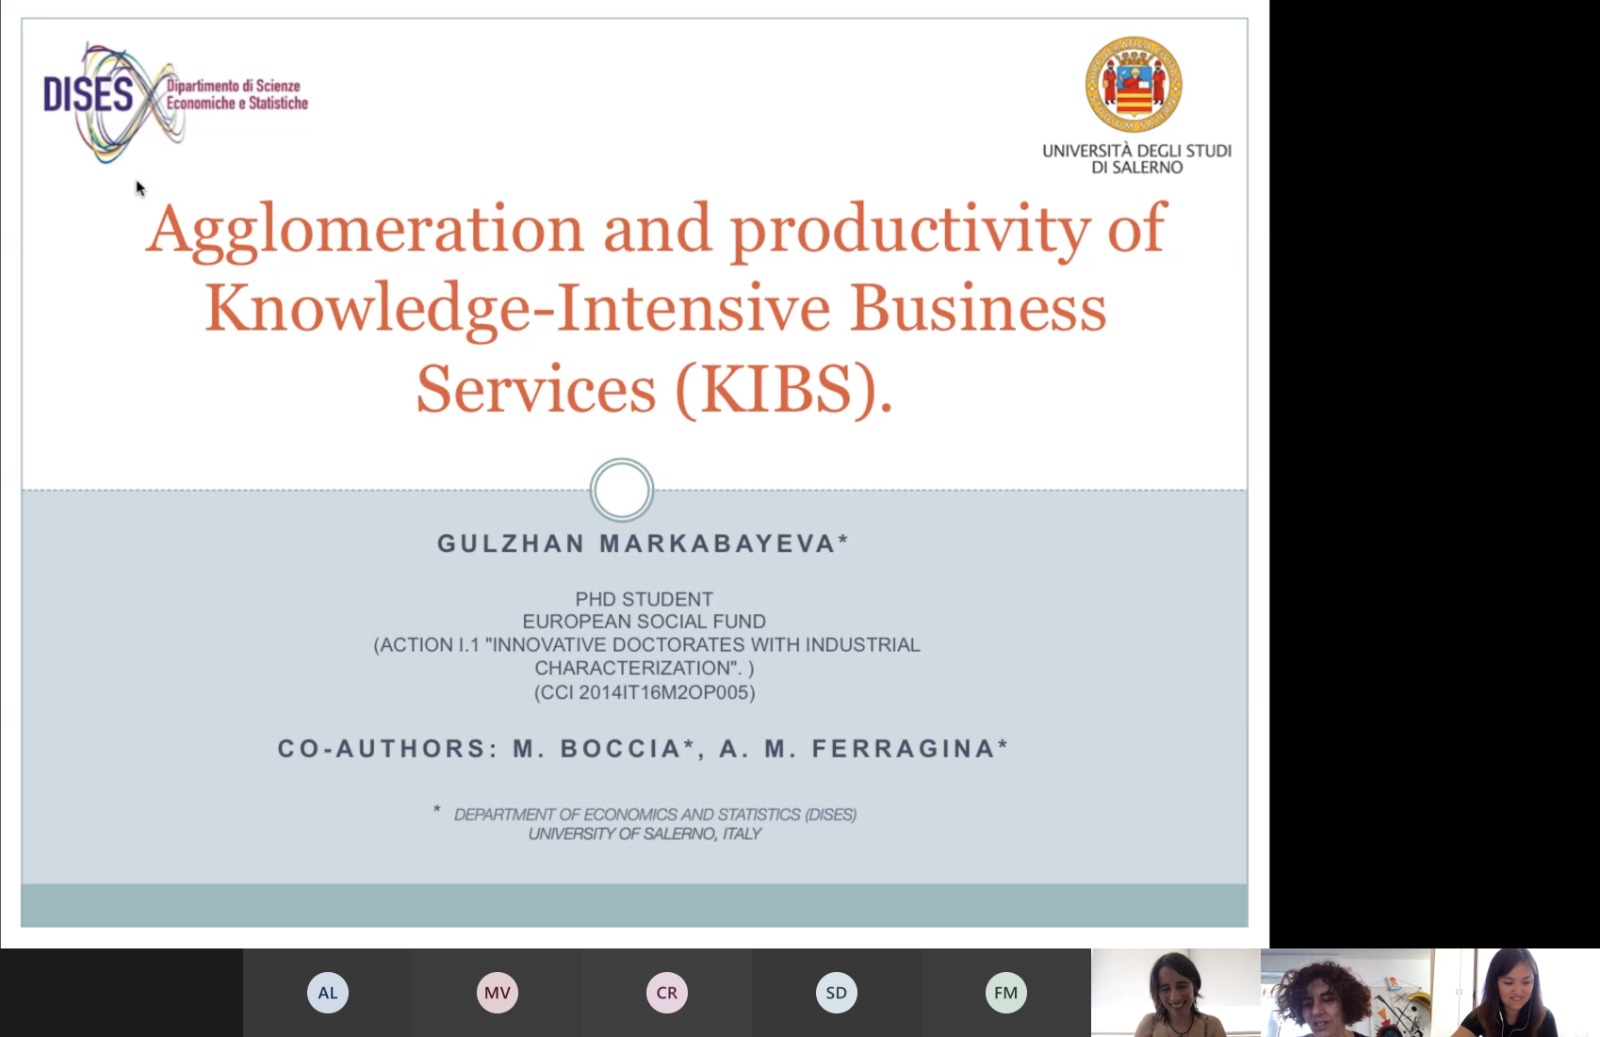 Does agglomeration matters for KIBS's productivity?